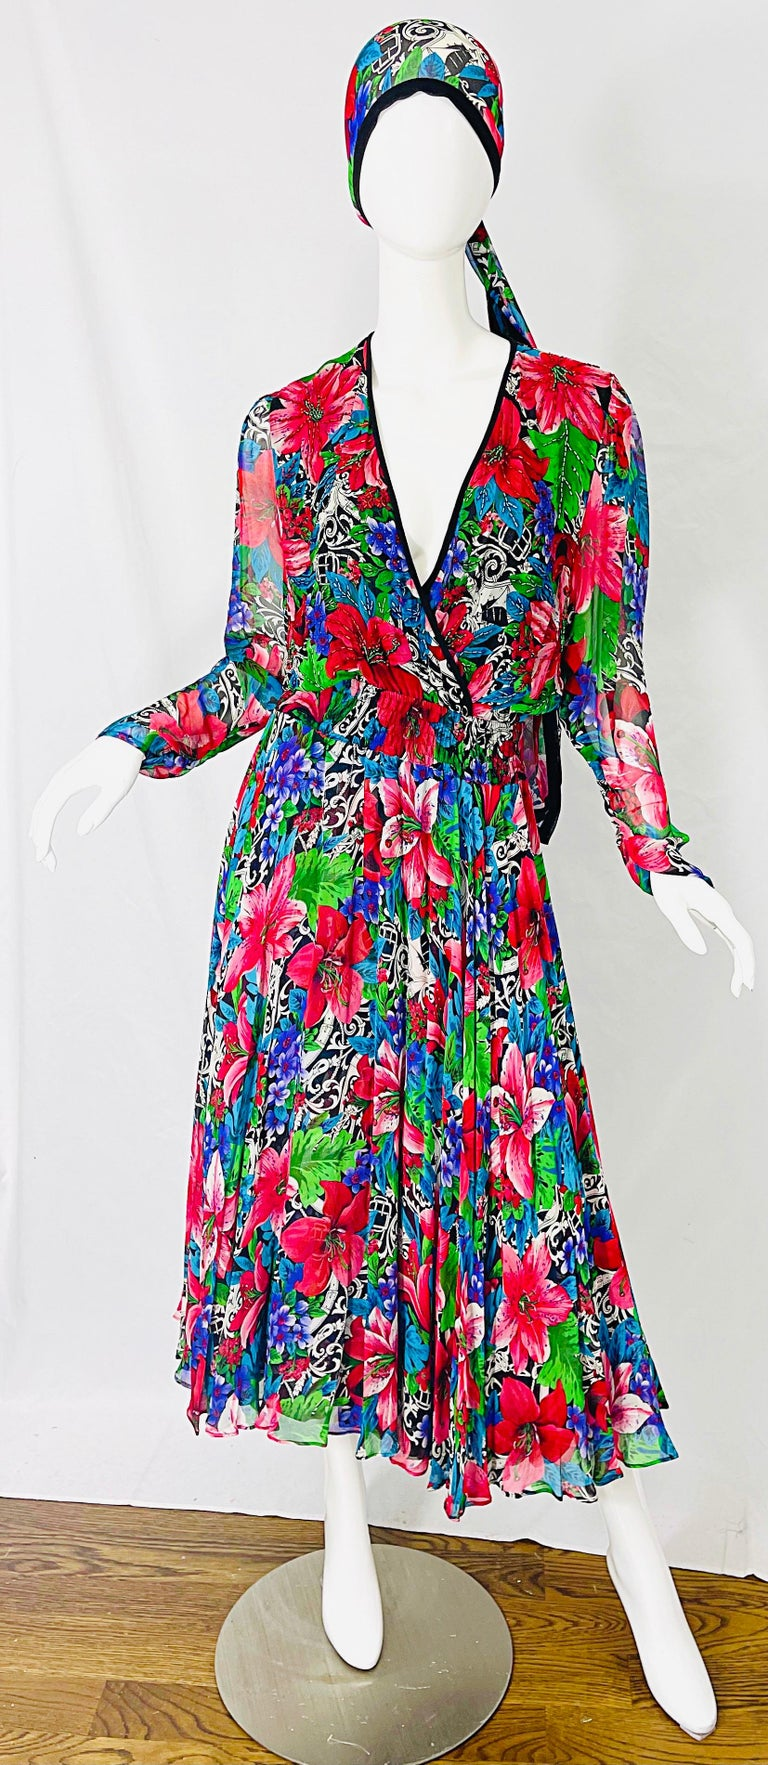 Amazing DIANE FREIS brightly colored tropical print beaded silk chiffon midi dress and sash ! Vibrant colors of green, blue, purple, red, black and white throughout. V-neck bodice with hundreds of hand-sewn beads. Flowy skirt looks fantastic with